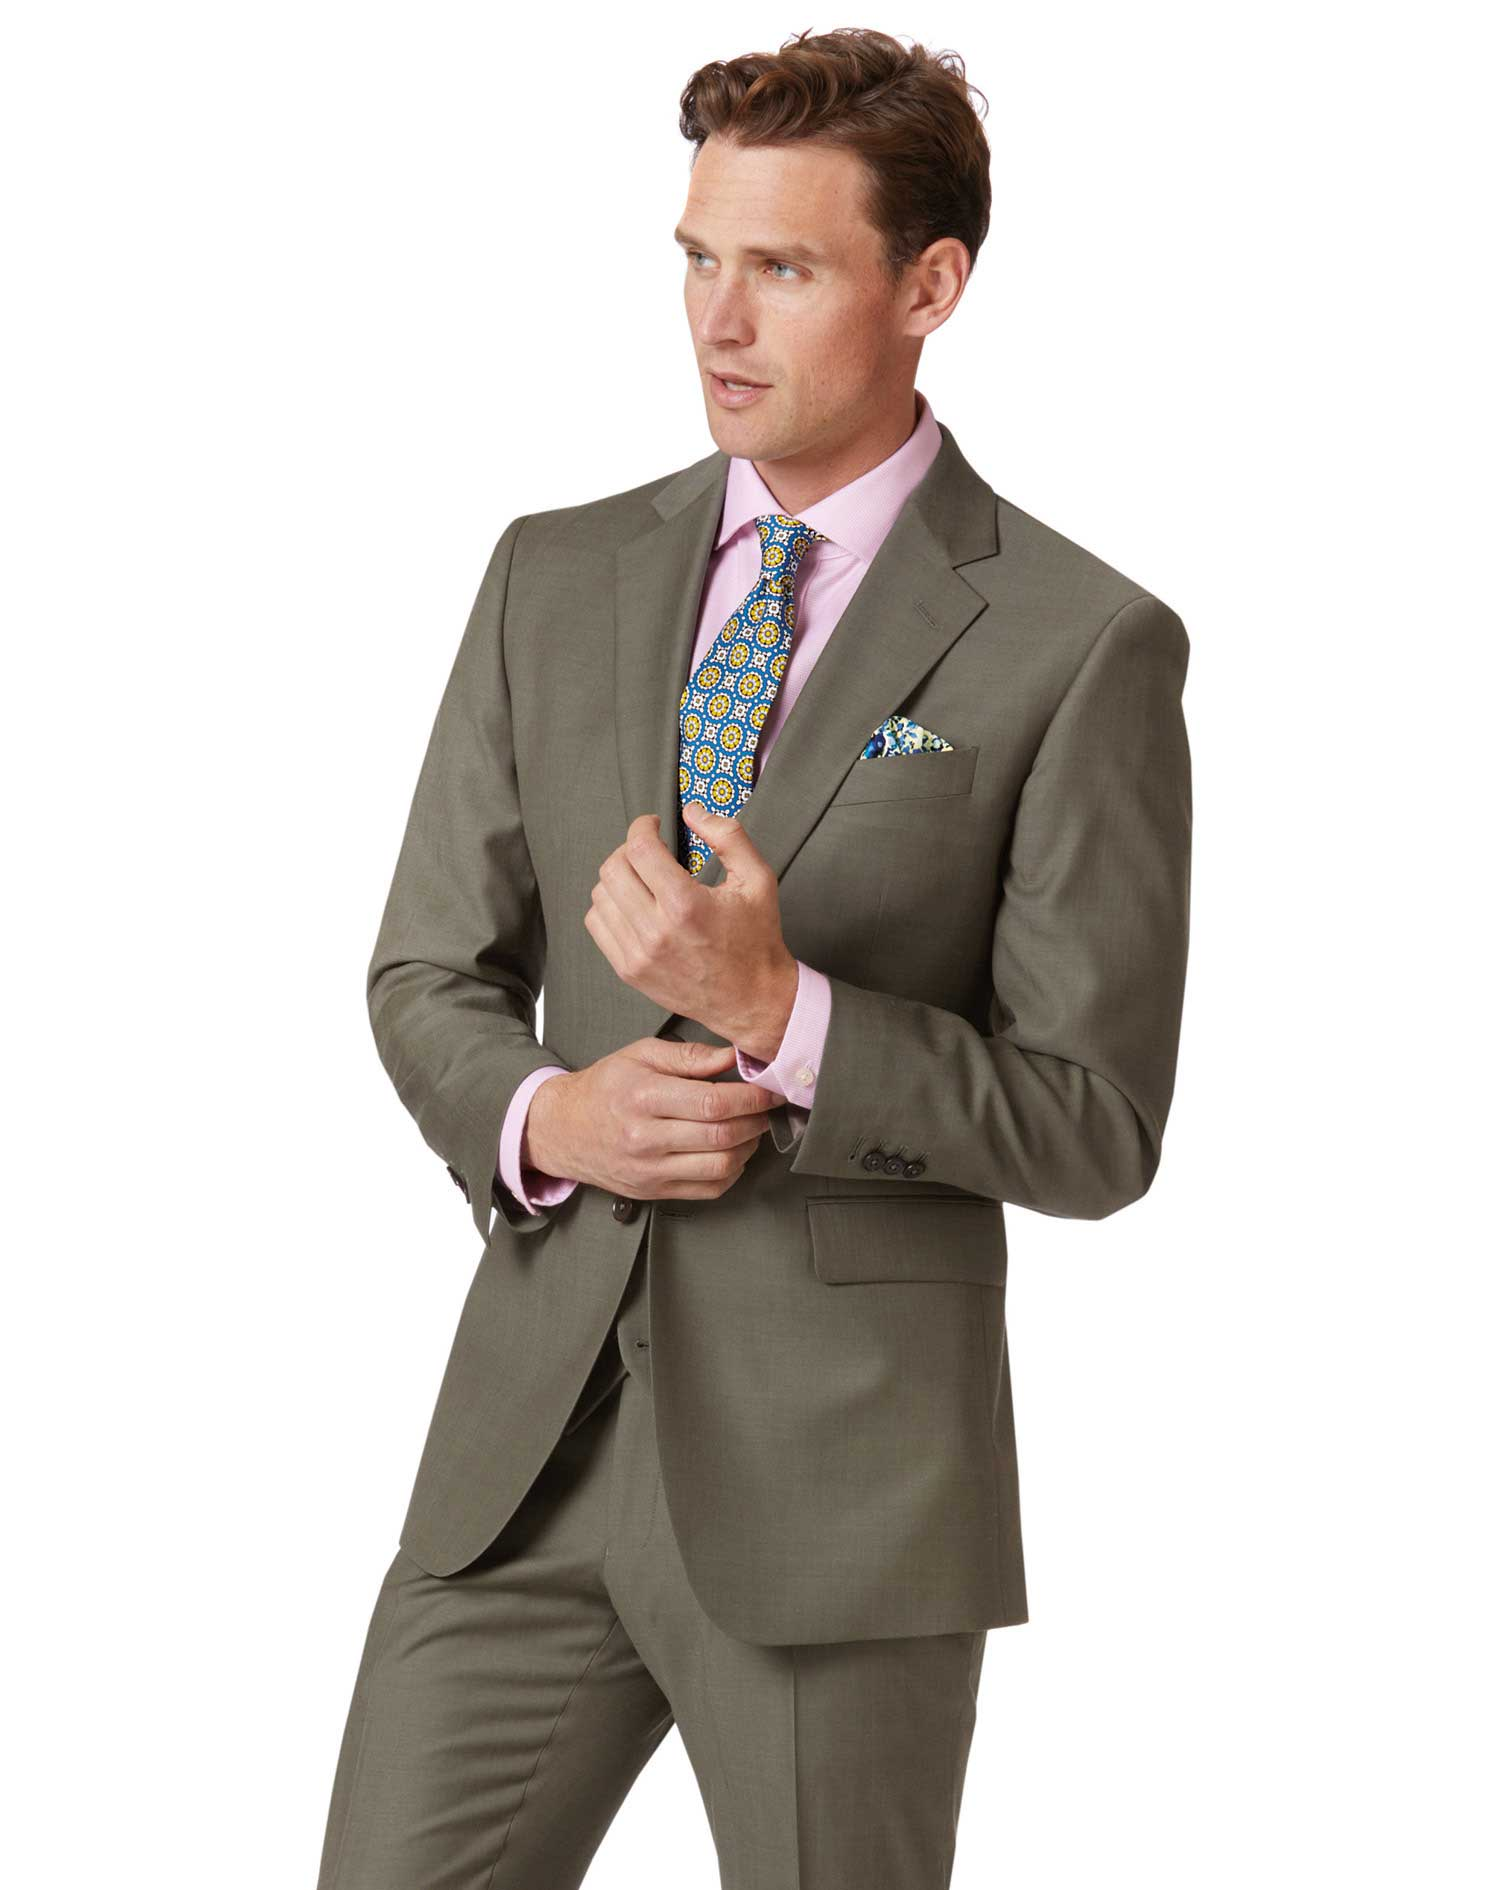 Olive Slim Fit Twill Business Suit Wool Jacket Size 40 Short by Charles Tyrwhitt